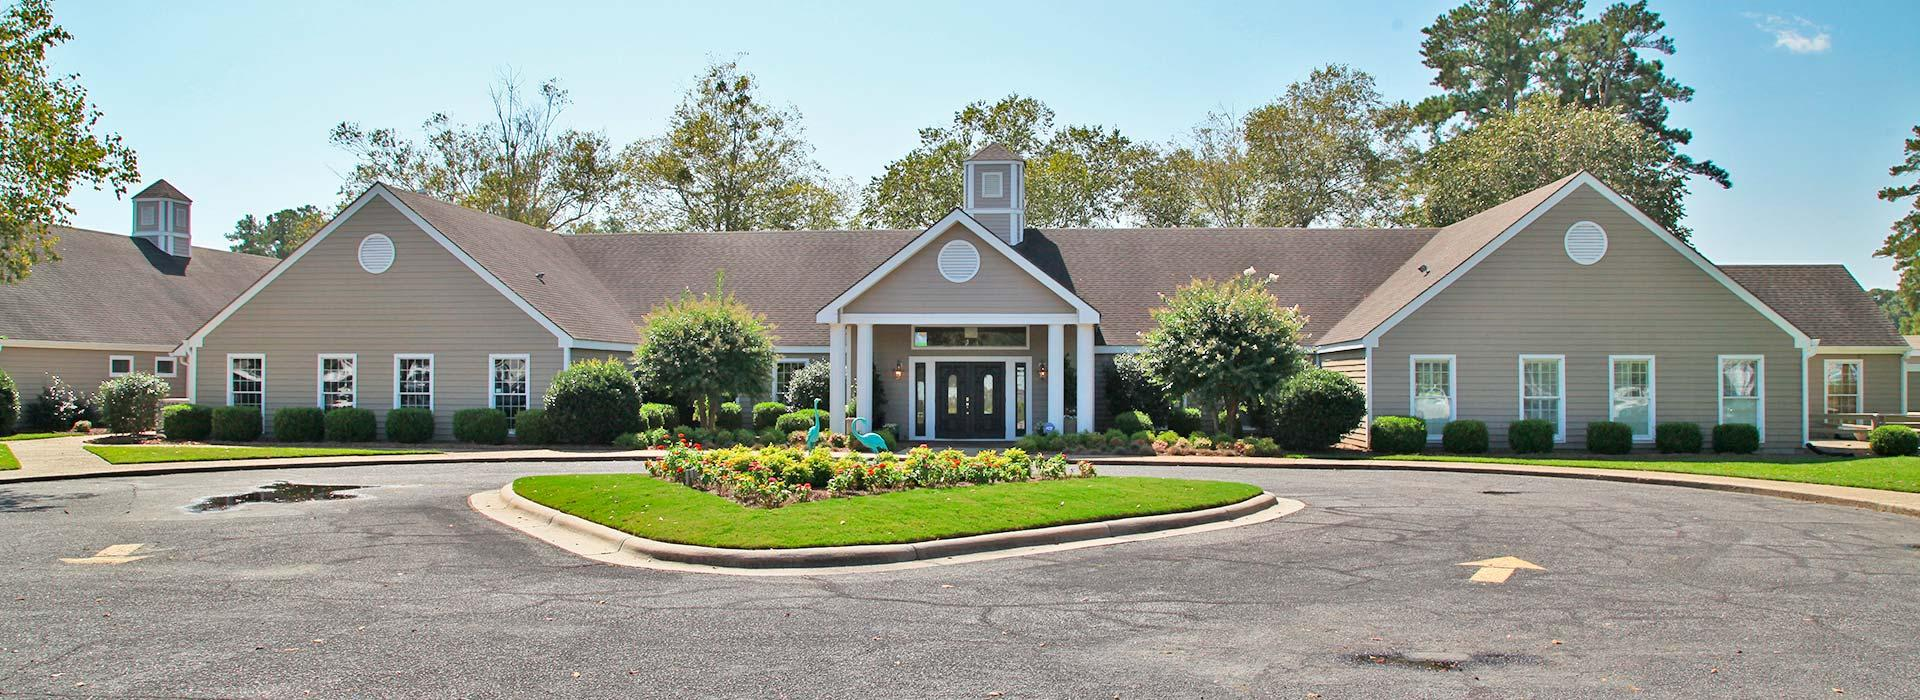 YMCA at the Pines golf clubhouse in Elizabeth City, NC